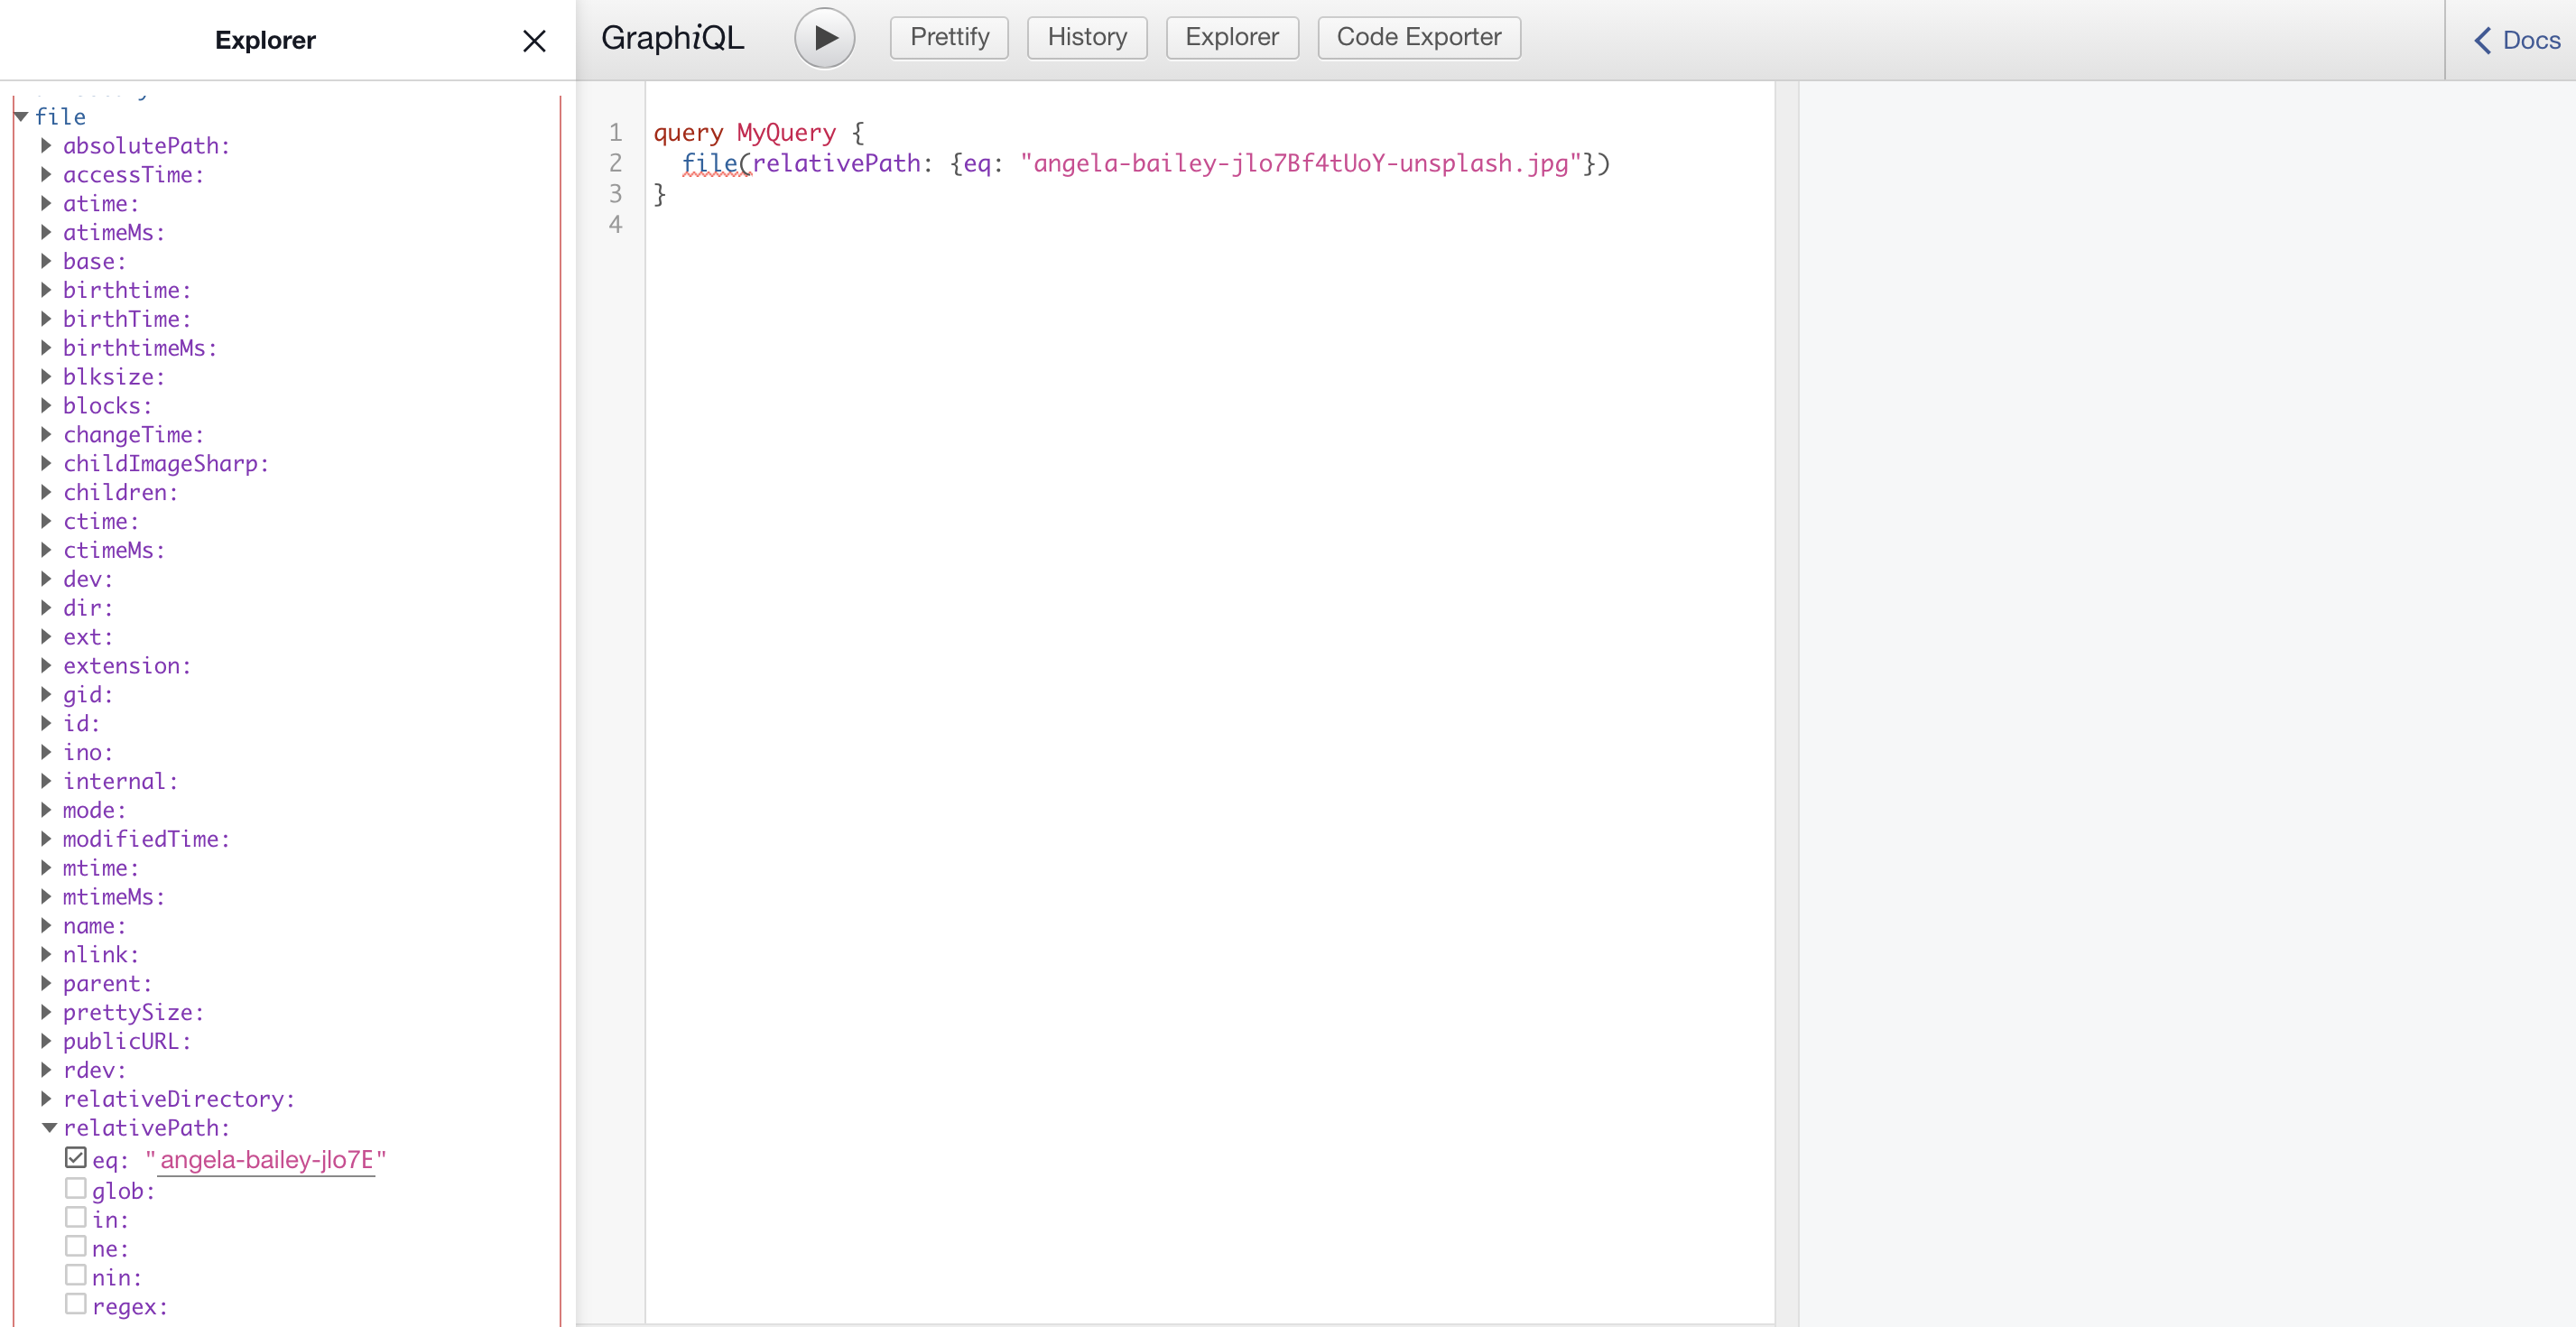 GraphQL IDE showing the query to locate the image in the filesystem